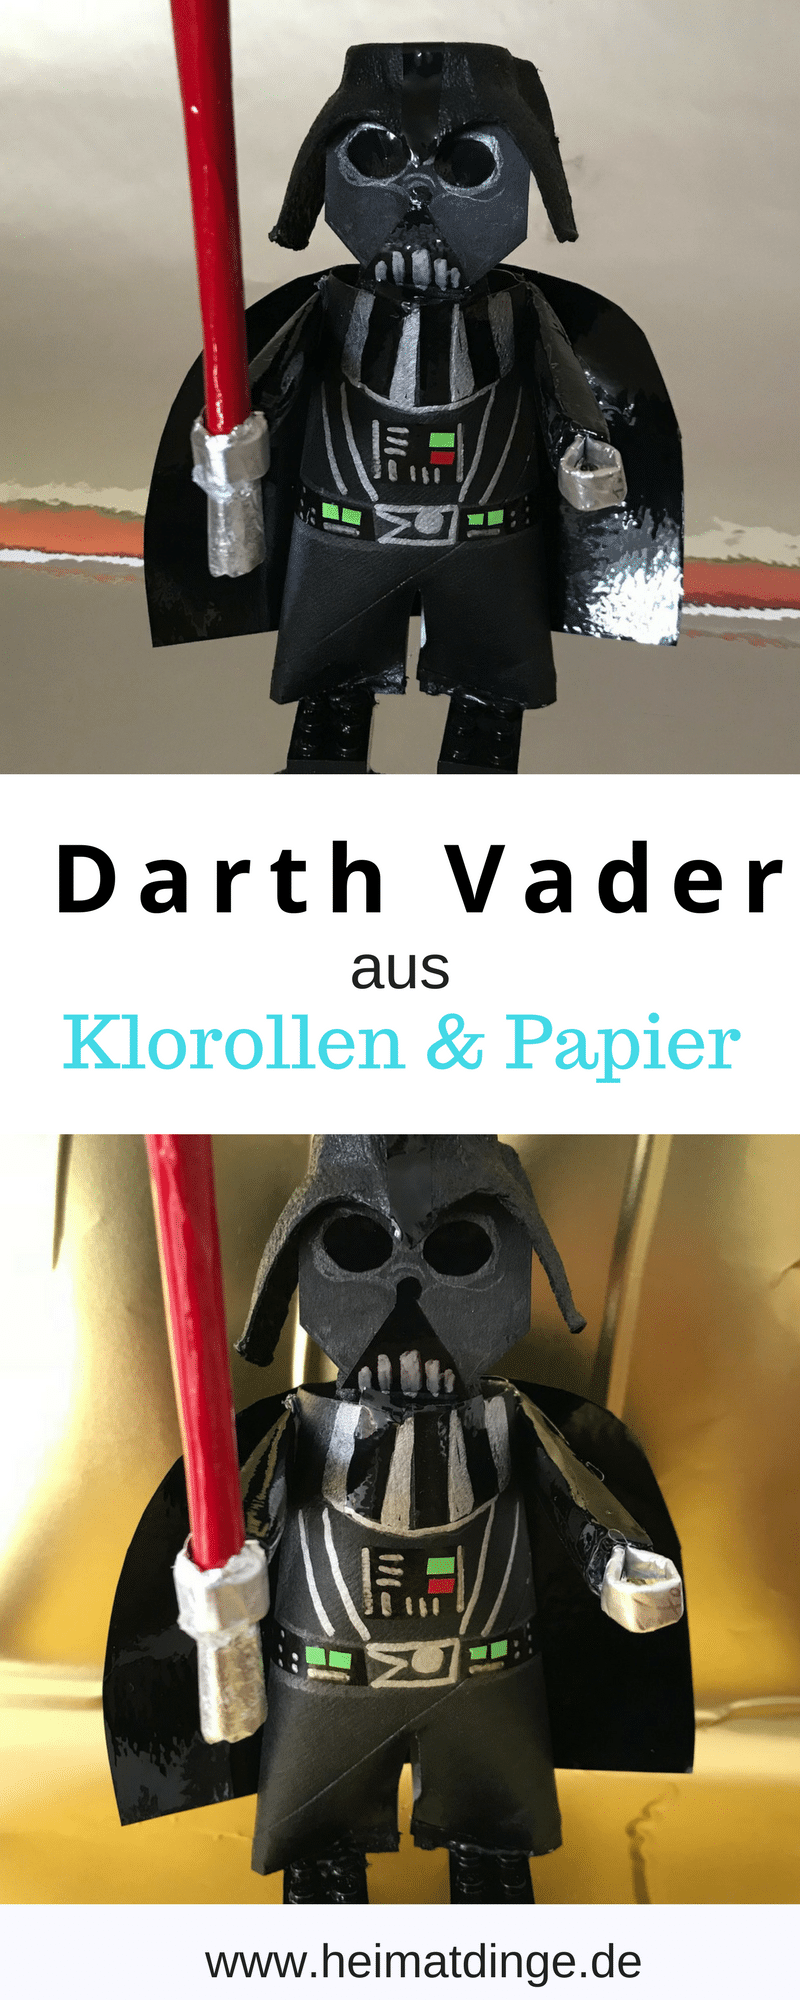 Darth Vader aus Verpackungsmaterial selber machen, Upcycling